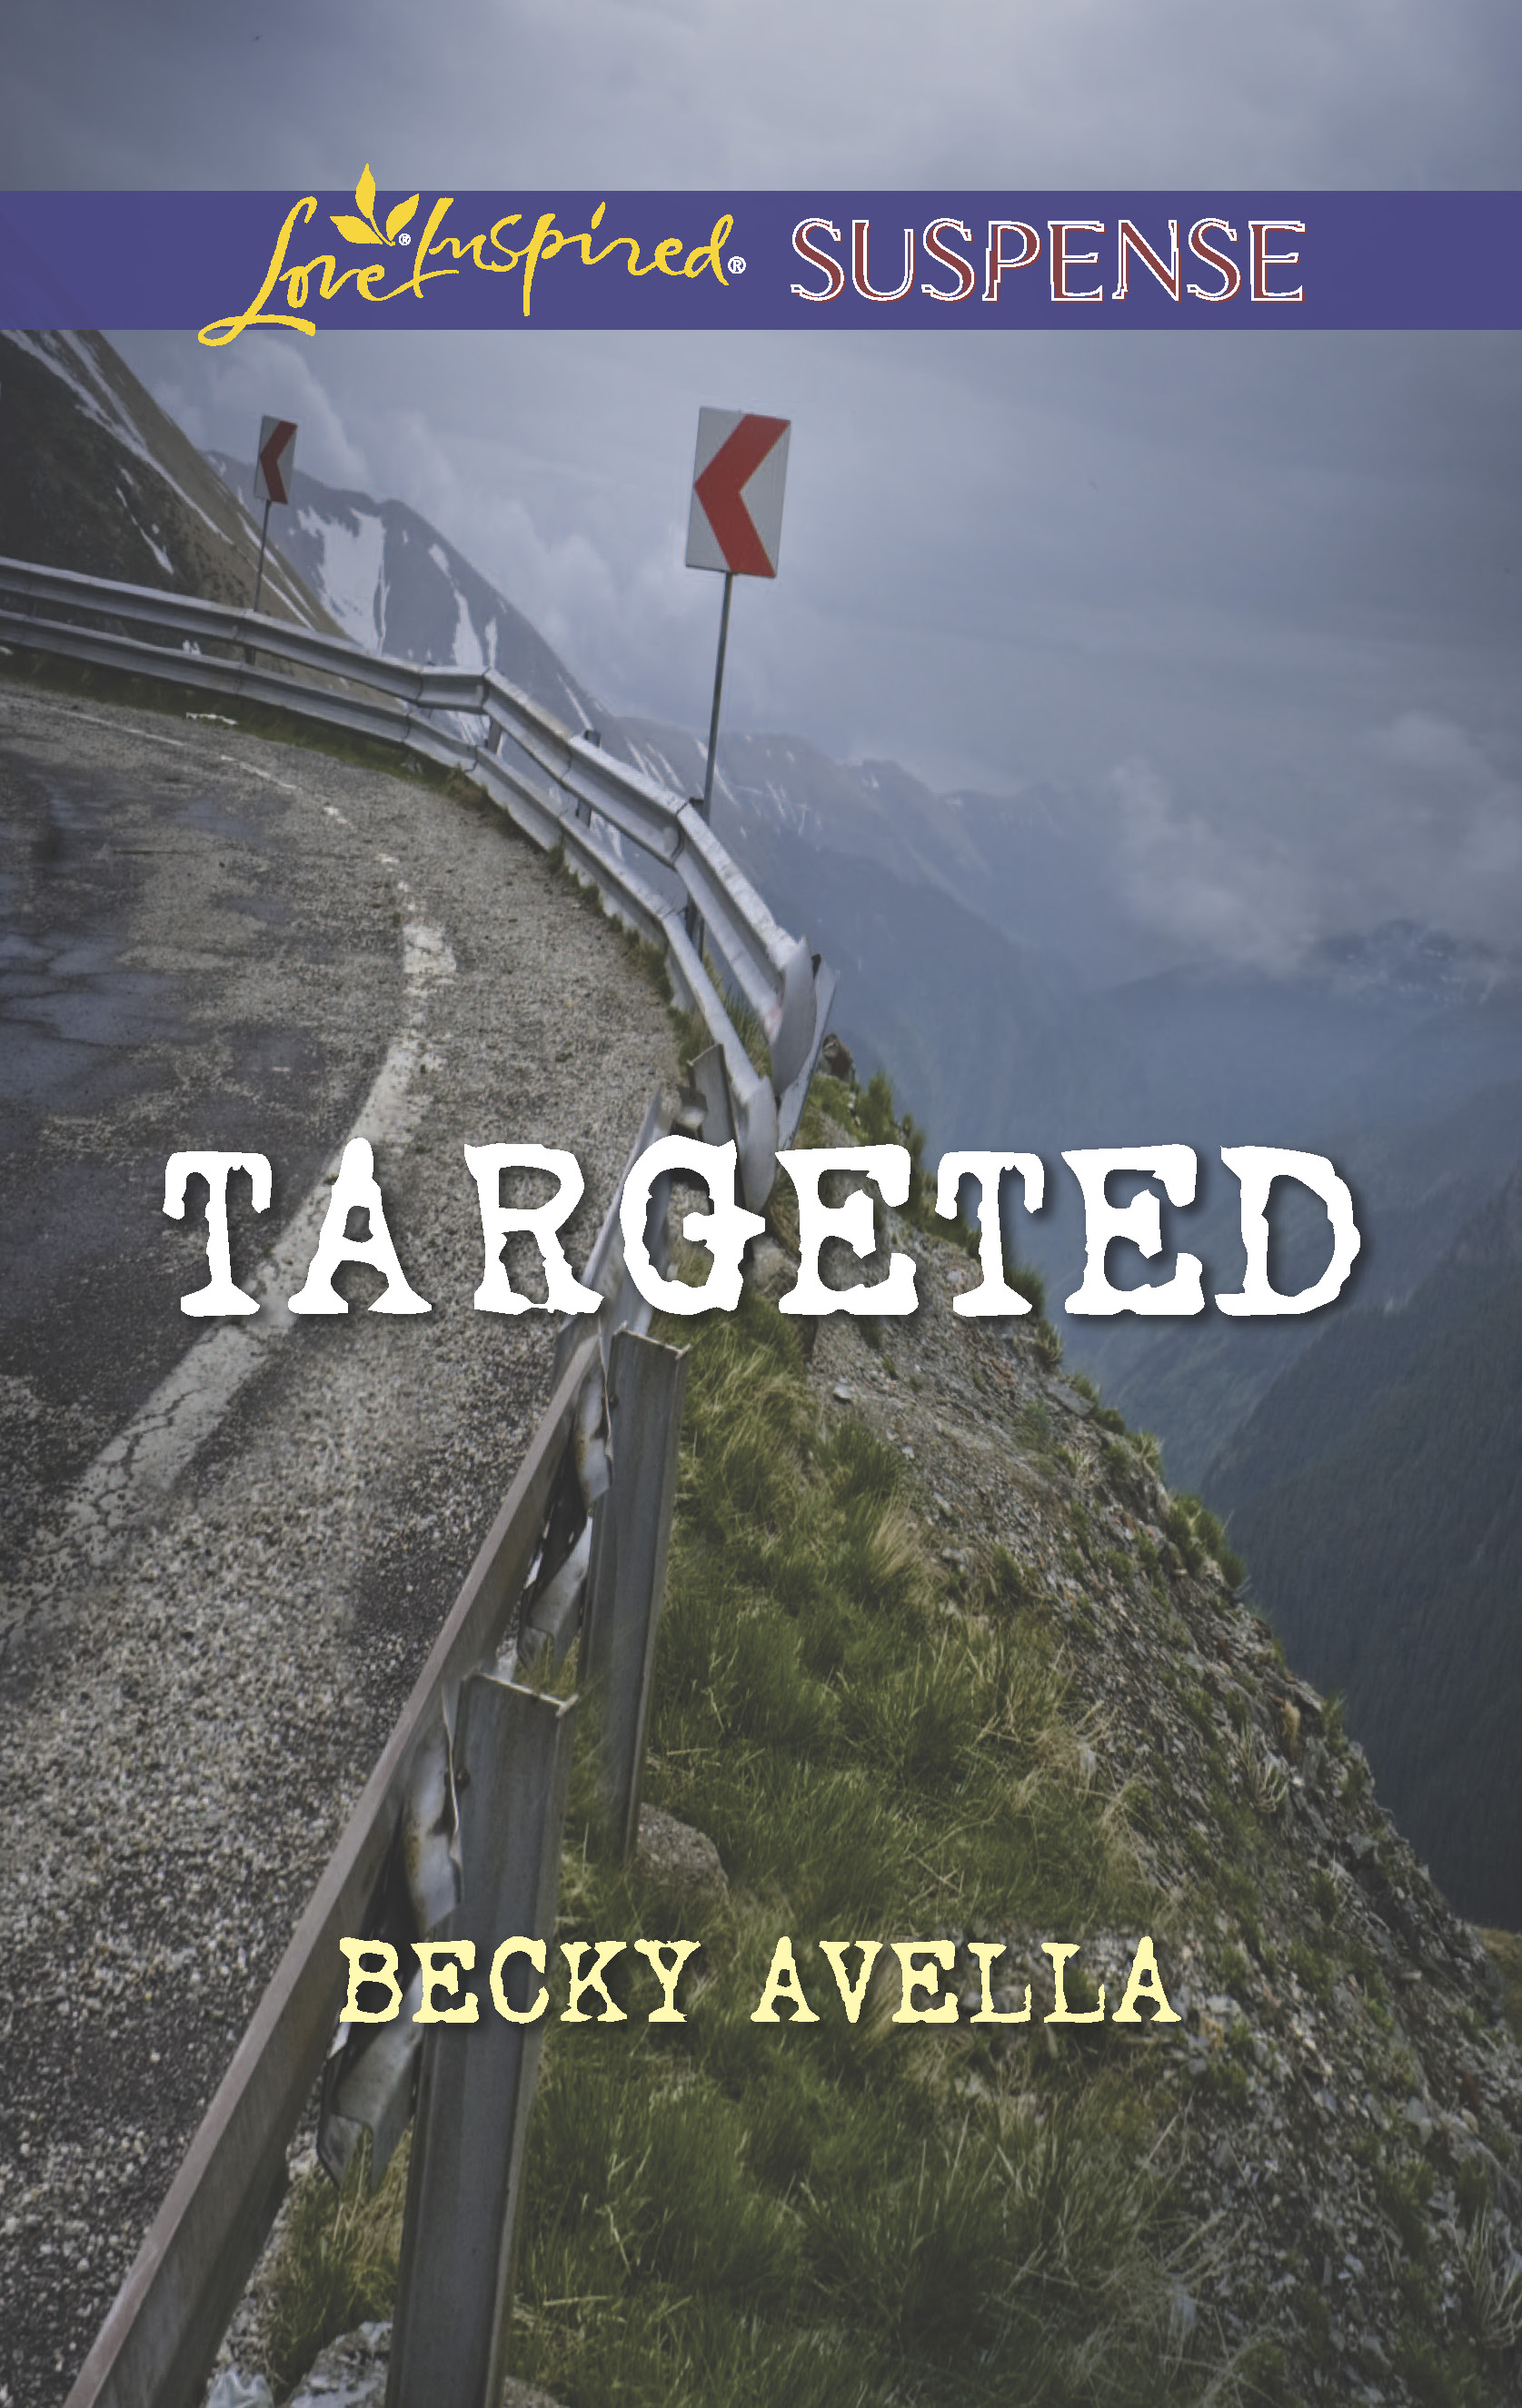 becky avella interview targeted by becky avella